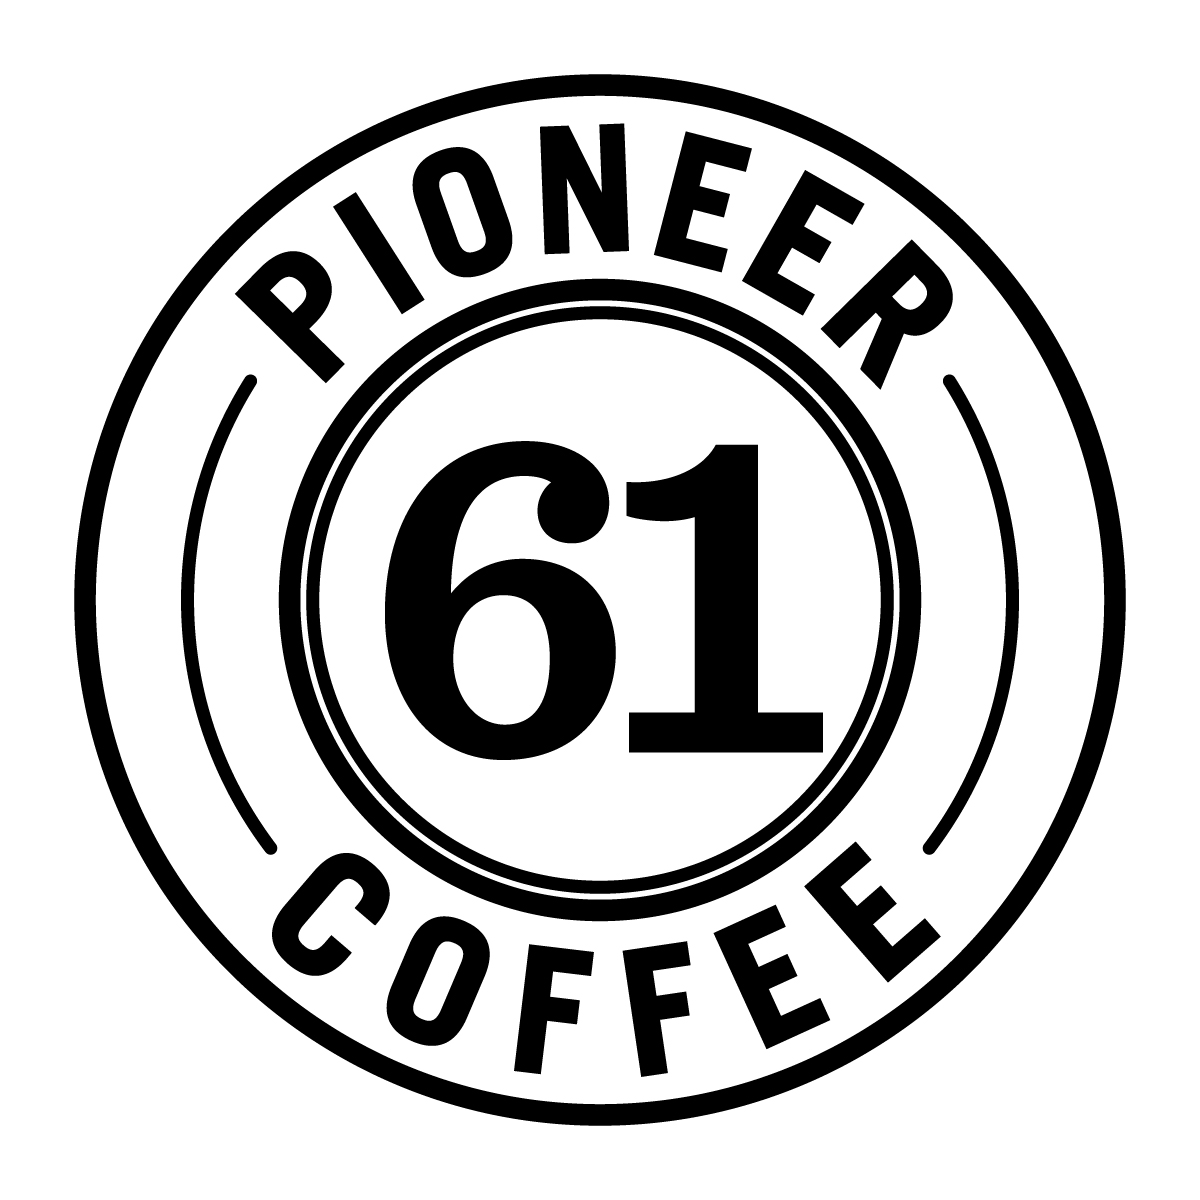 Pioneer 61 Coffee Co.